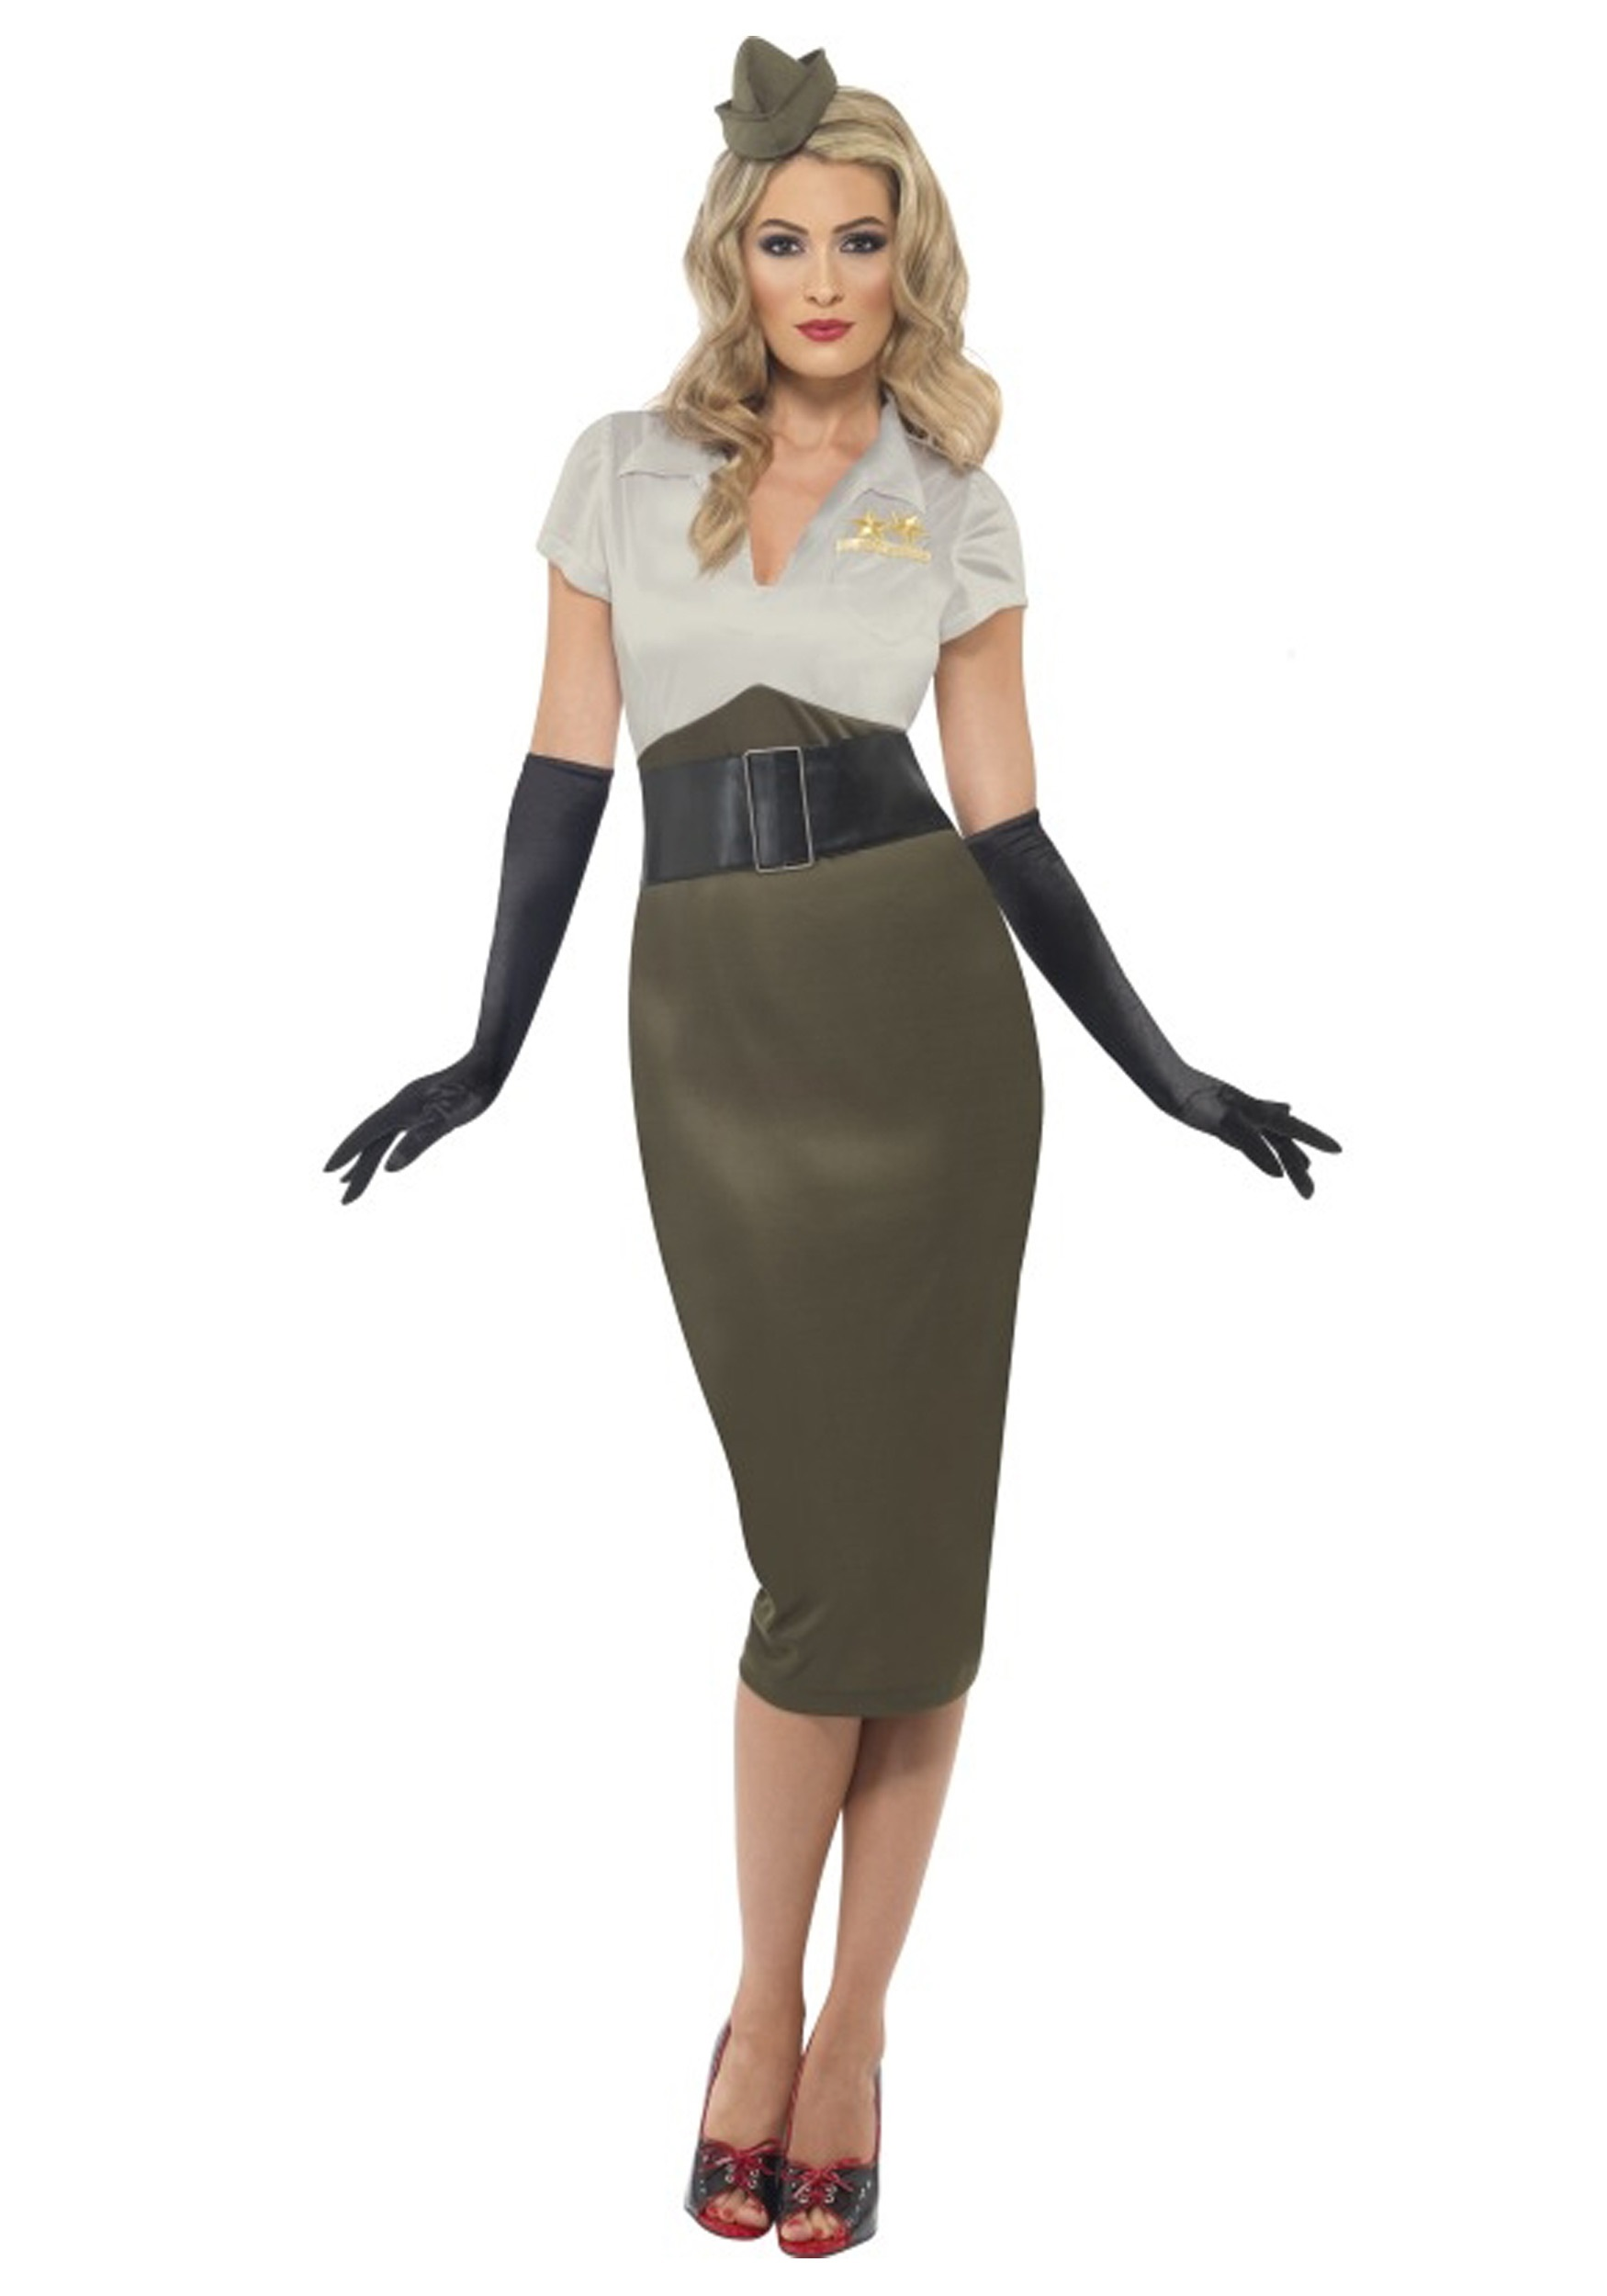 ww2 army pin up darling costume - Soldier Girl Halloween Costume